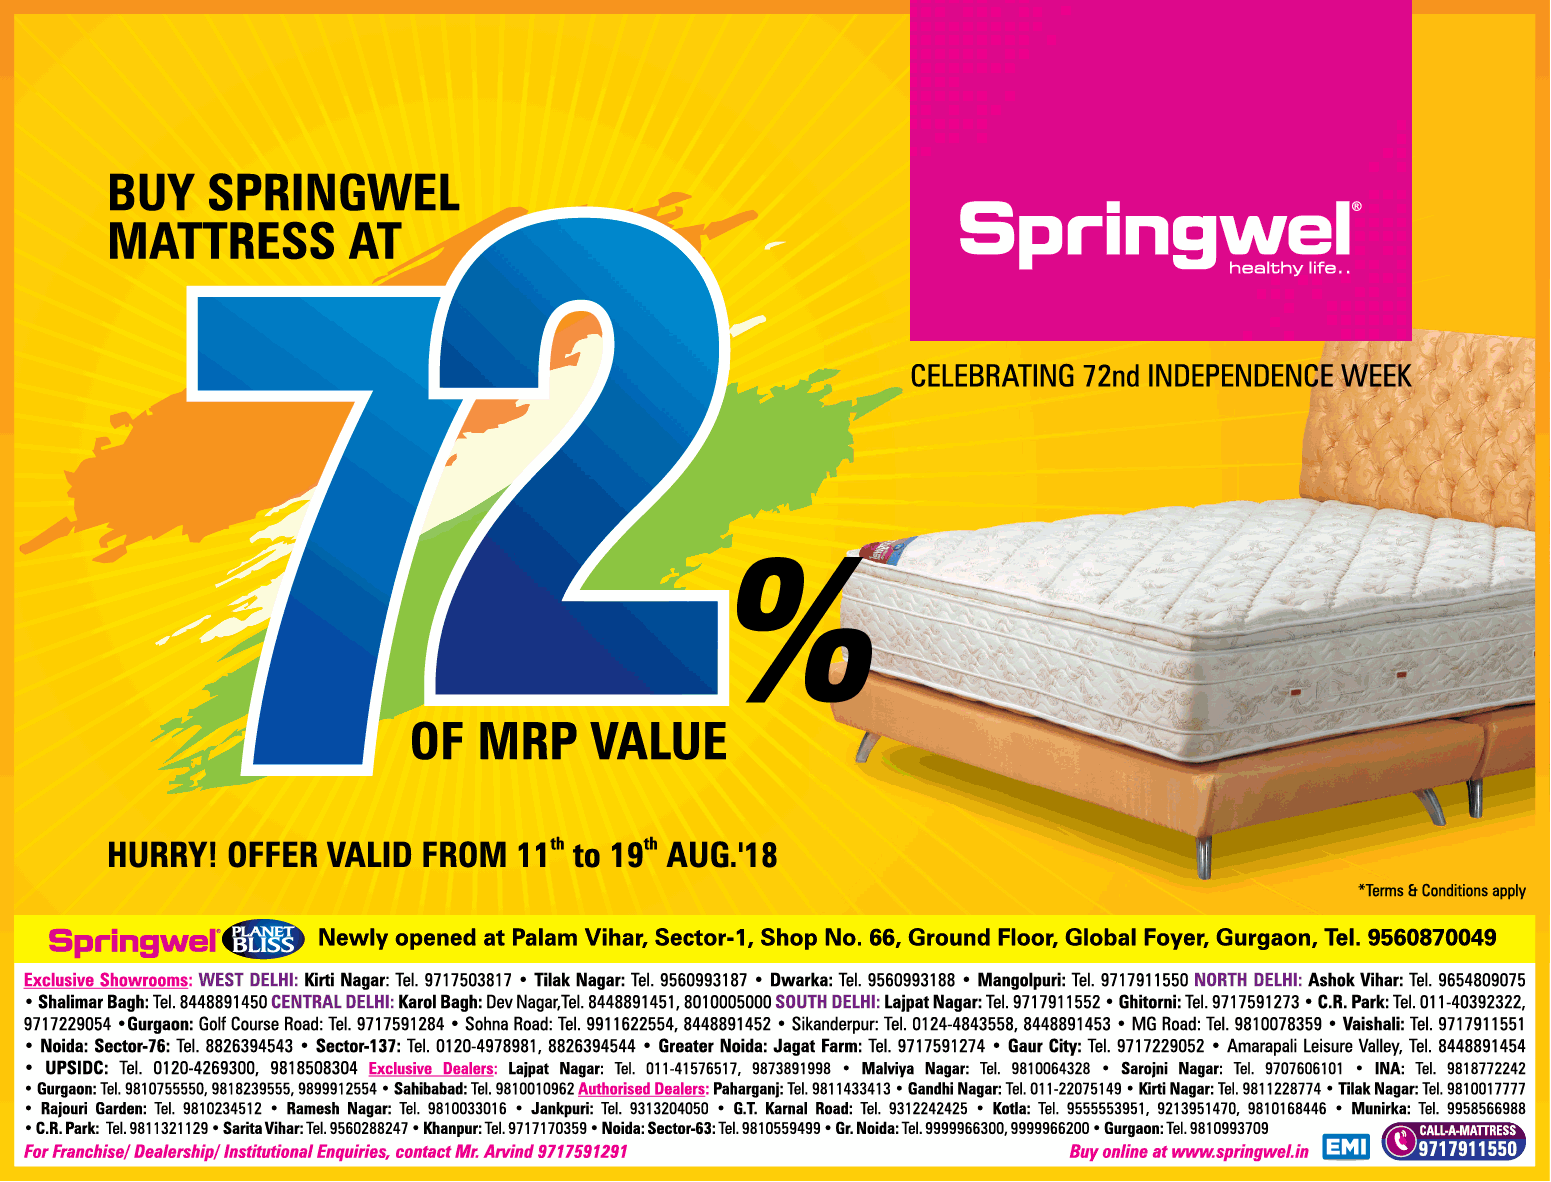 Springwel Mattress  - Festive Offer